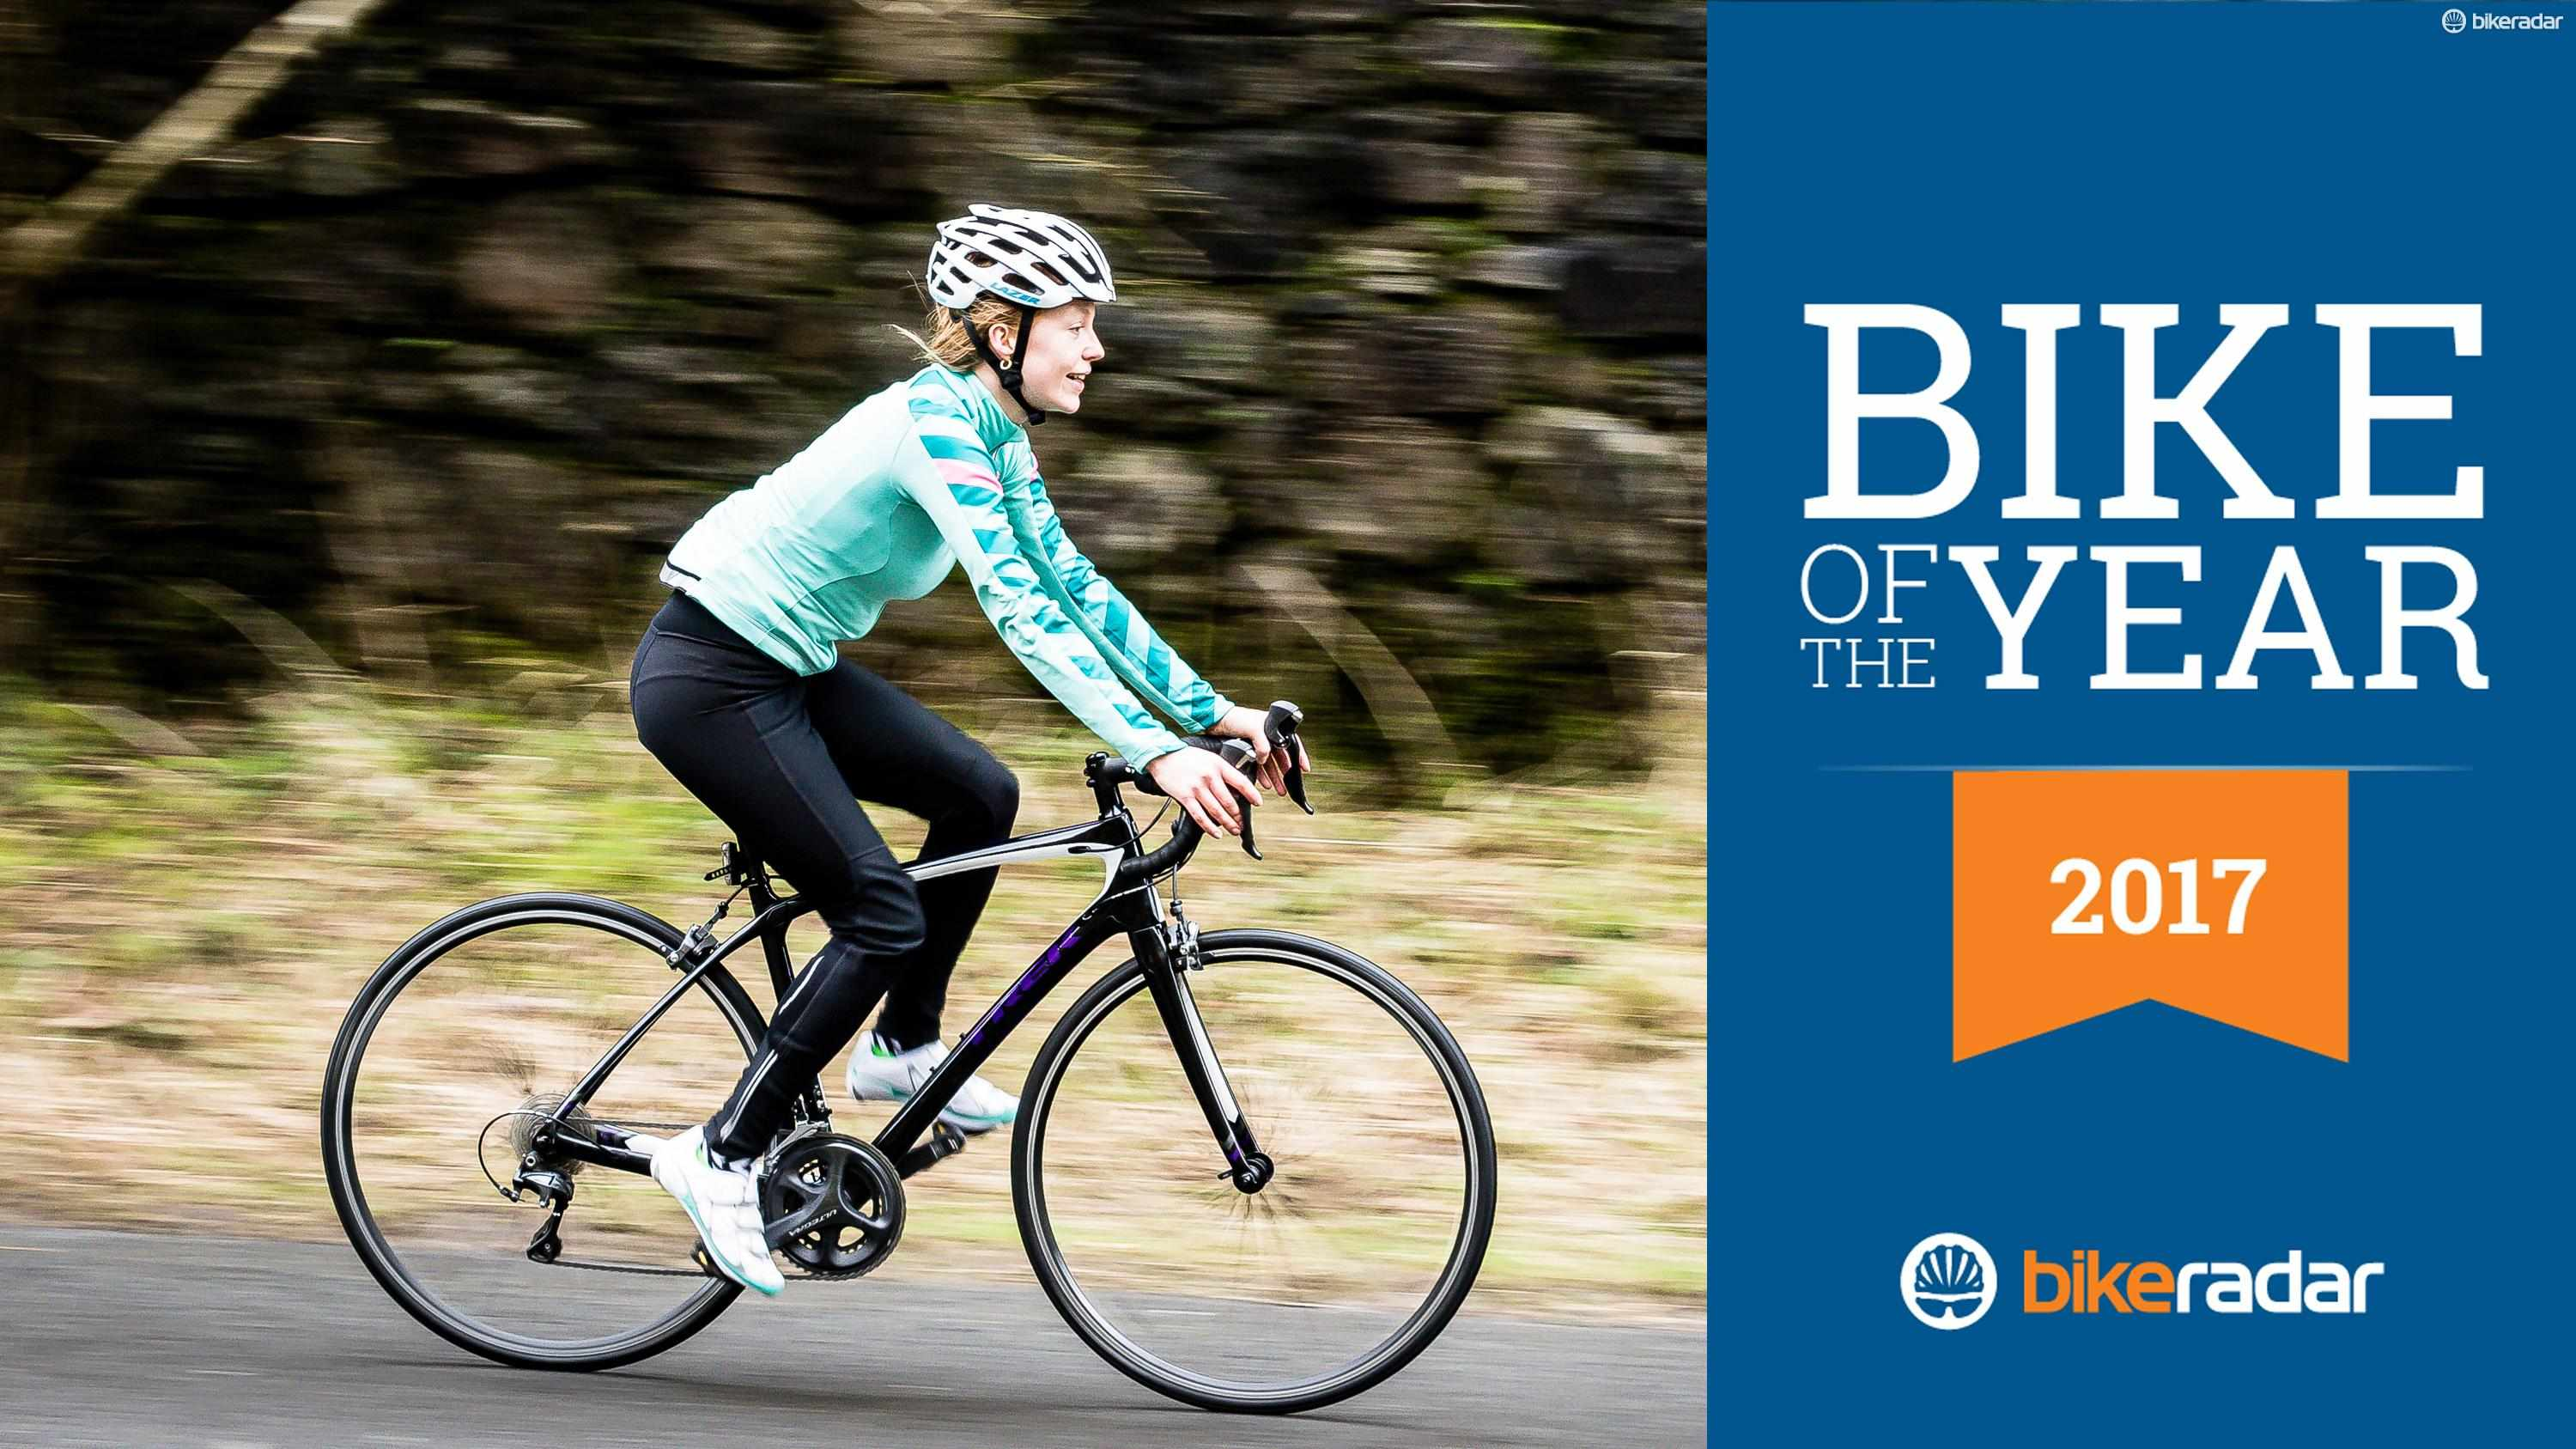 Winner of the Women's Road Bike of the Year is the Trek Silque